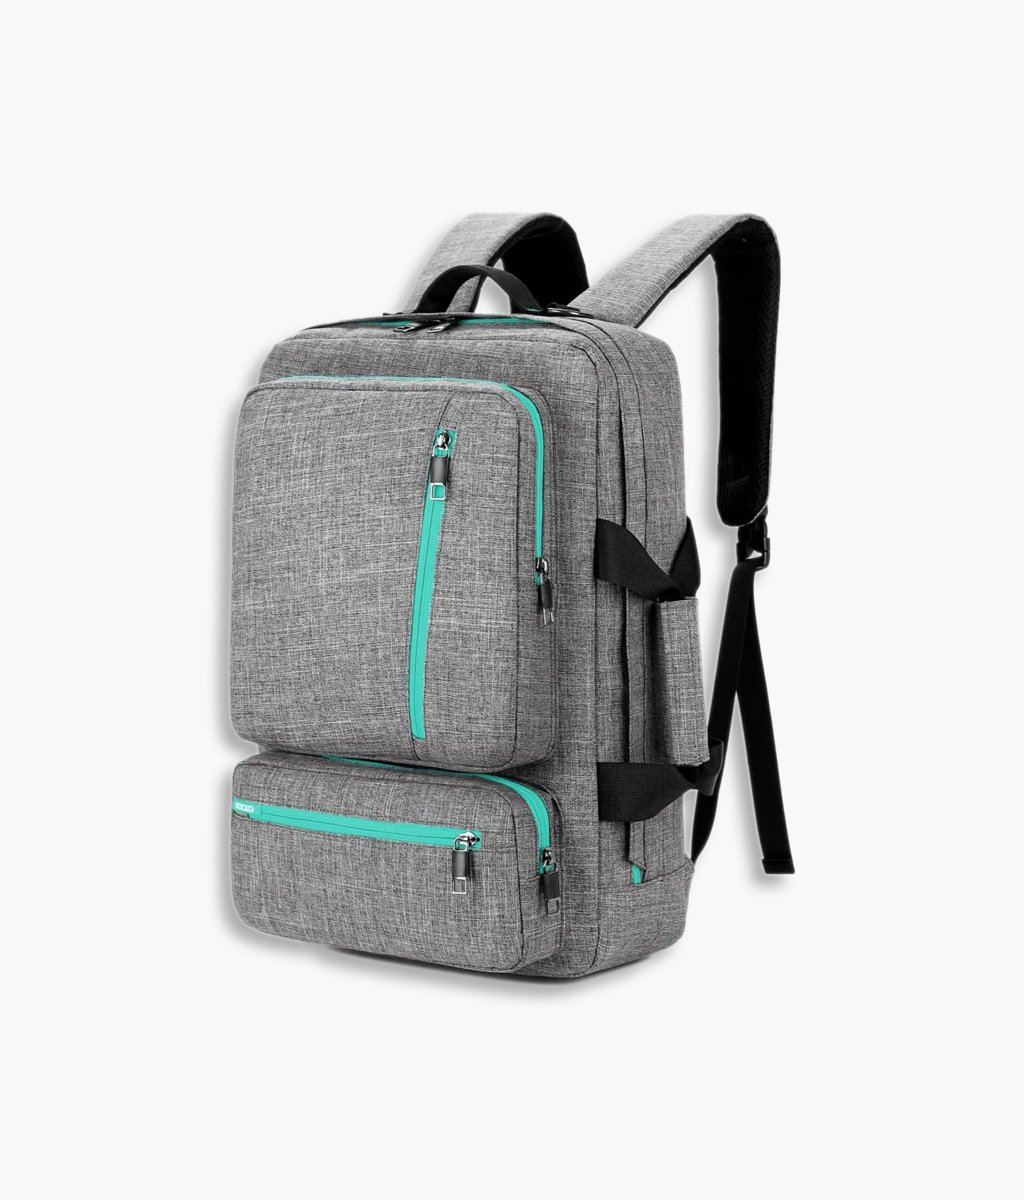 17 Inches Laptop Backpack Notebook